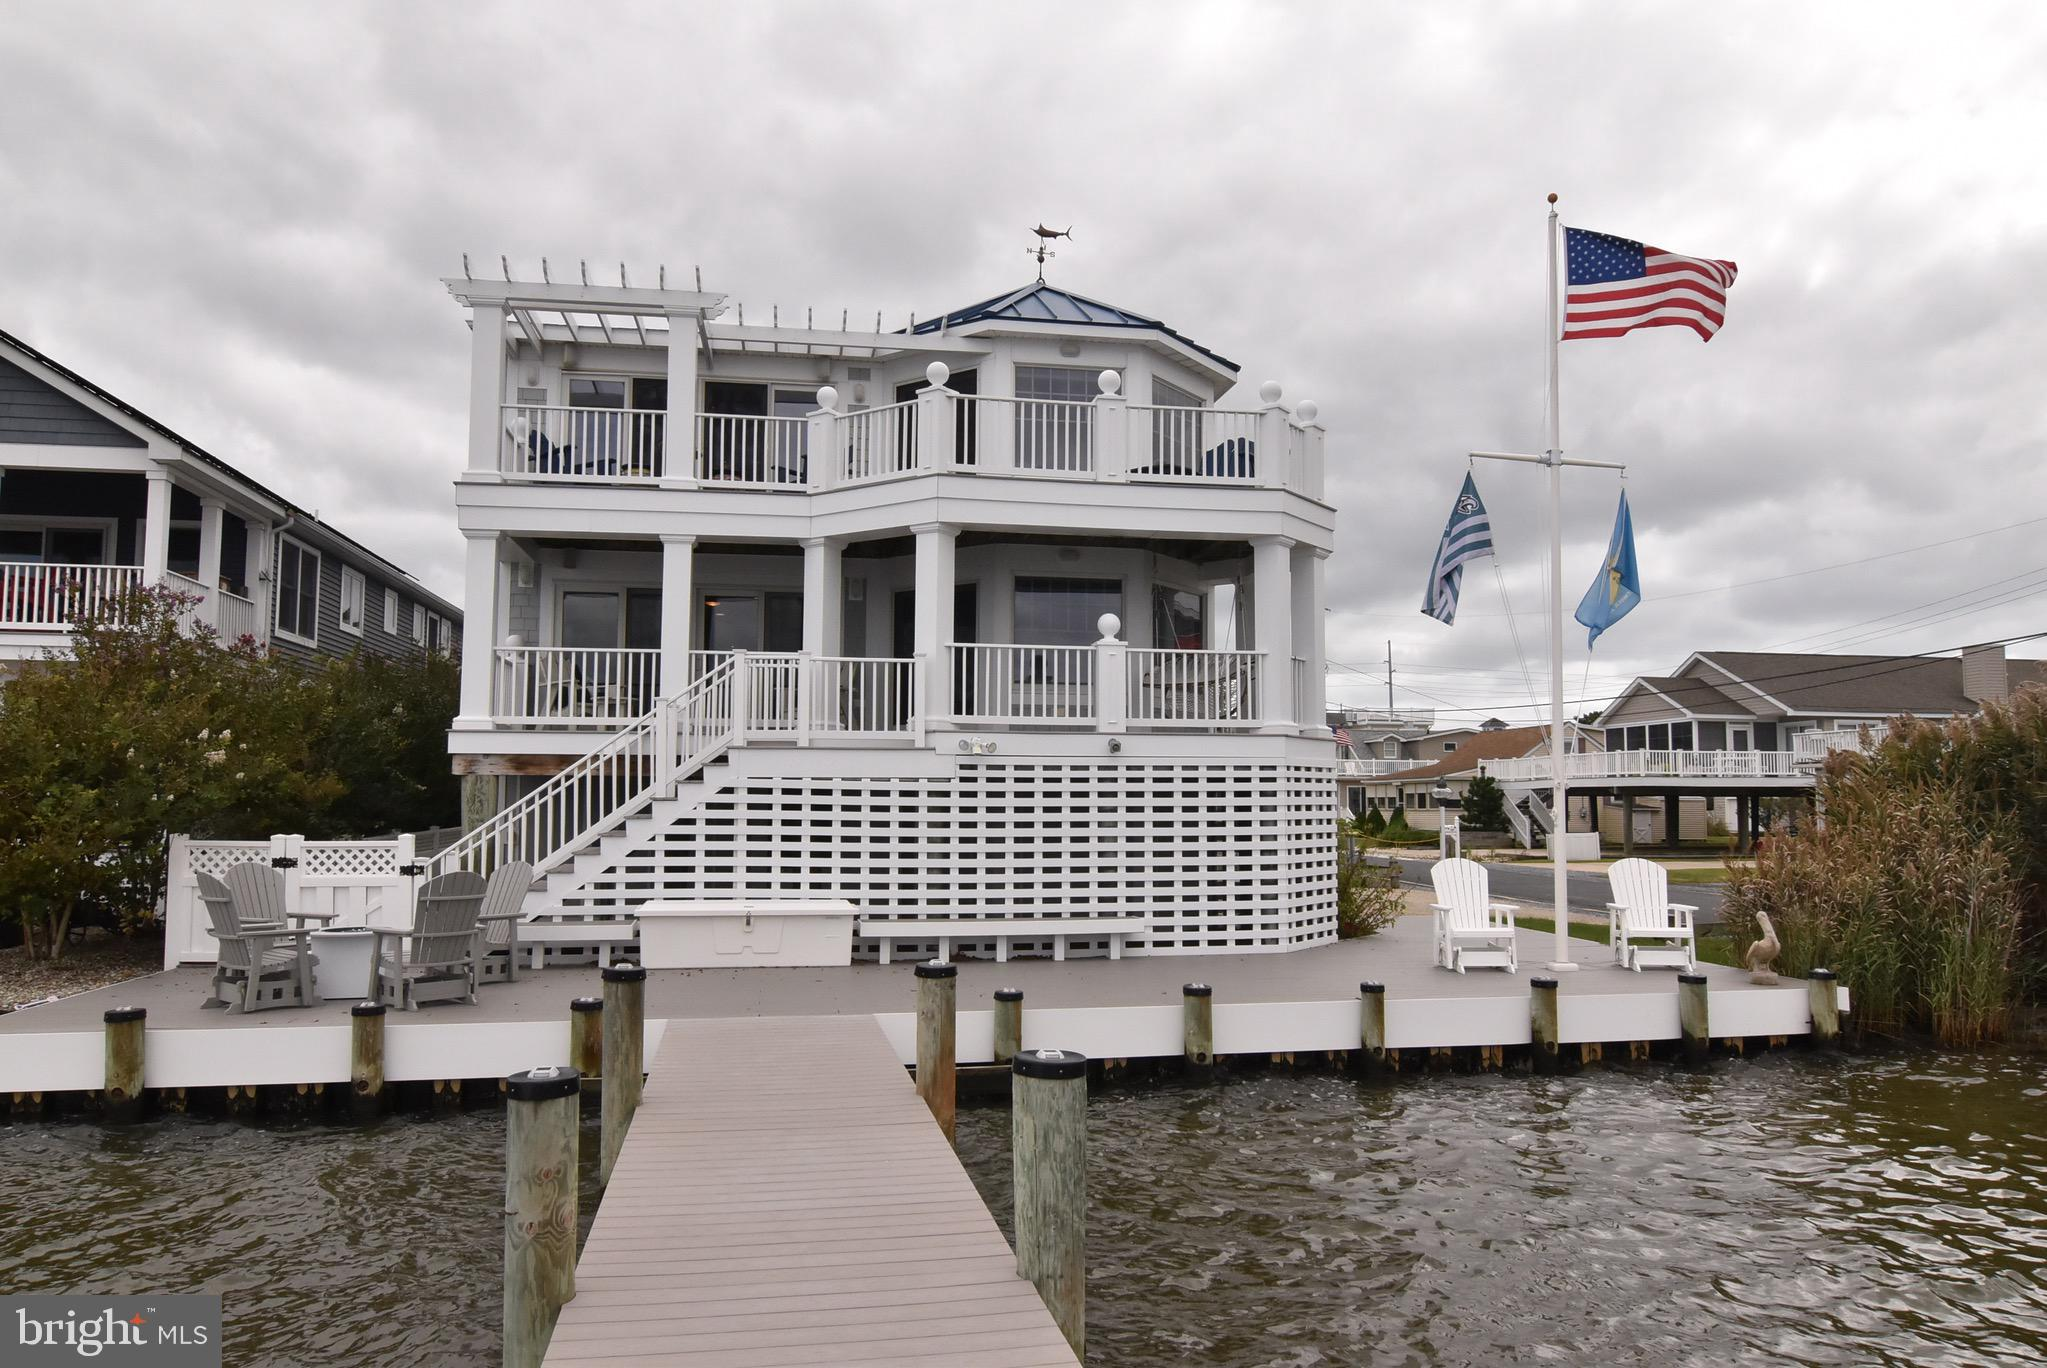 What an opportunity to purchase a custom home completely maintained and updated for 2020 with a private dock and a short skip to the wide, private beach of Fenwick! The beaches here are some of the best! This home has it all, a magnificent master suite on the bay side with views that go on and on! Many private spaces for family and guests,  guest wings on two levels. Each side has large luxurious baths with two sinks and all updated with granite! Off the main level is an enormous  deck area , ideal for entertaining with loads of privacy! The top level of the home  has an enormous gourmet kitchen with Blue Bahia Granite that is striking; a large island , beverage center, gas cooking...floor to ceiling tile fireplace...soaring views of the bay that go on and on...The dining area has expansive views of the water, leading out to the deck . Your dinner guests may never want to leave because it is a smashing spot to dine. Southern exposure/solar panels owned. Home automation system.  In addition there is a sunroom off the top area leading out to a spiral staircase with a roof top deck; ideal for  star gazing, firework displays or simply sunbathing! This particular locations not only has the daytime fun of the bay and the beach but one can also pop into wonderful restaurants, farm markets and local shops without getting into your car.  Walk, Play and Enjoy the Quiet Resort of Fenwick Island